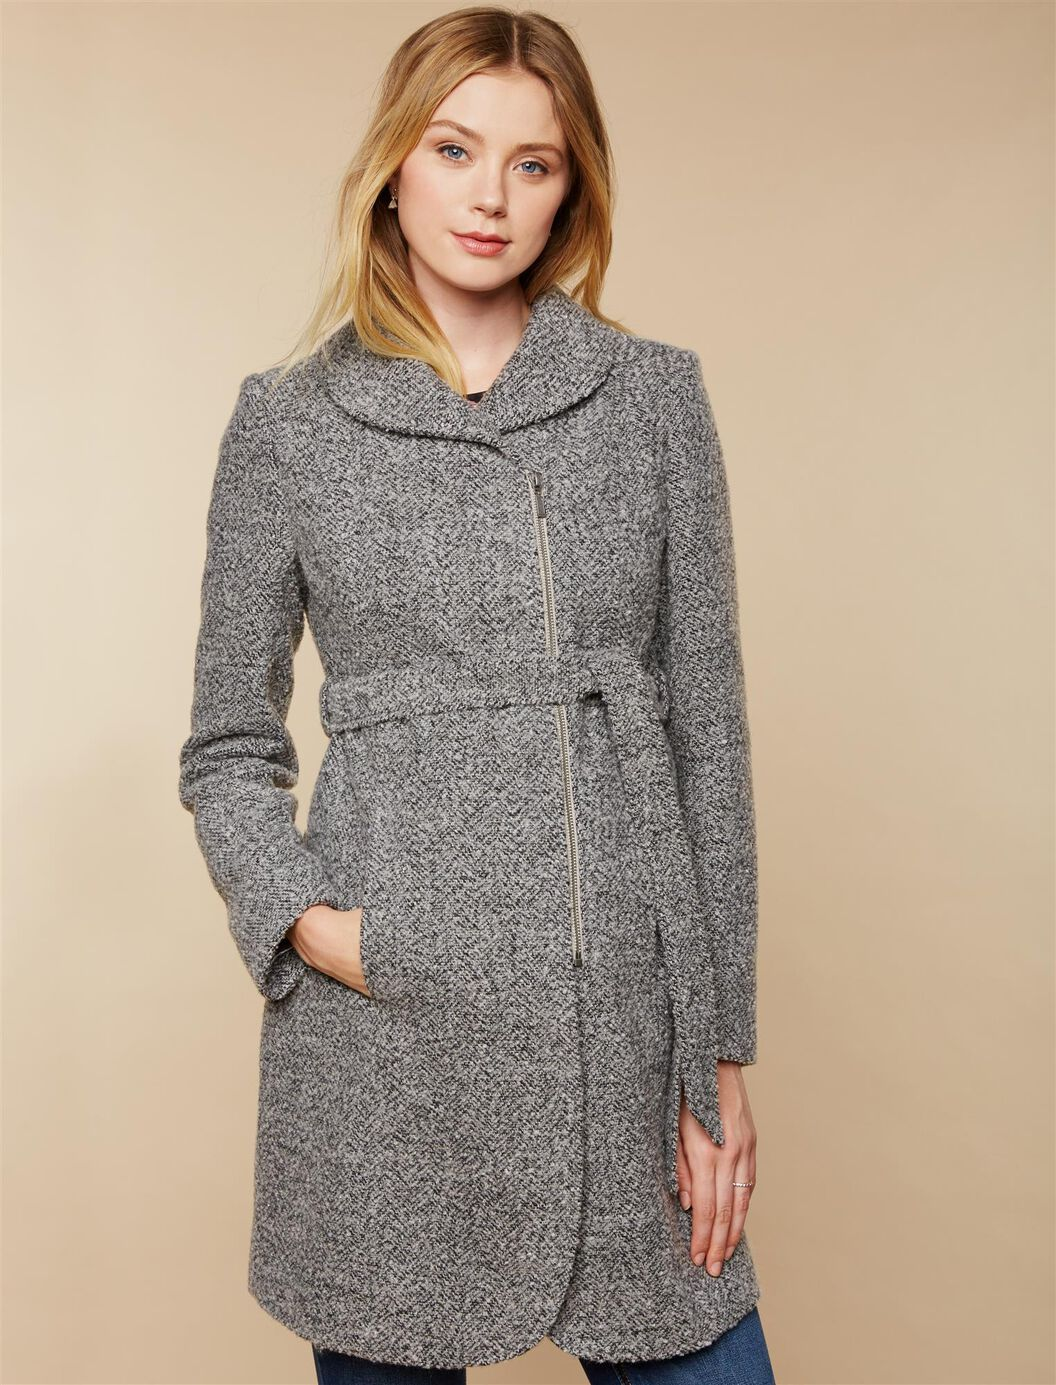 Removable Waist Tie Wool Maternity Coat at Motherhood Maternity in Victor, NY | Tuggl